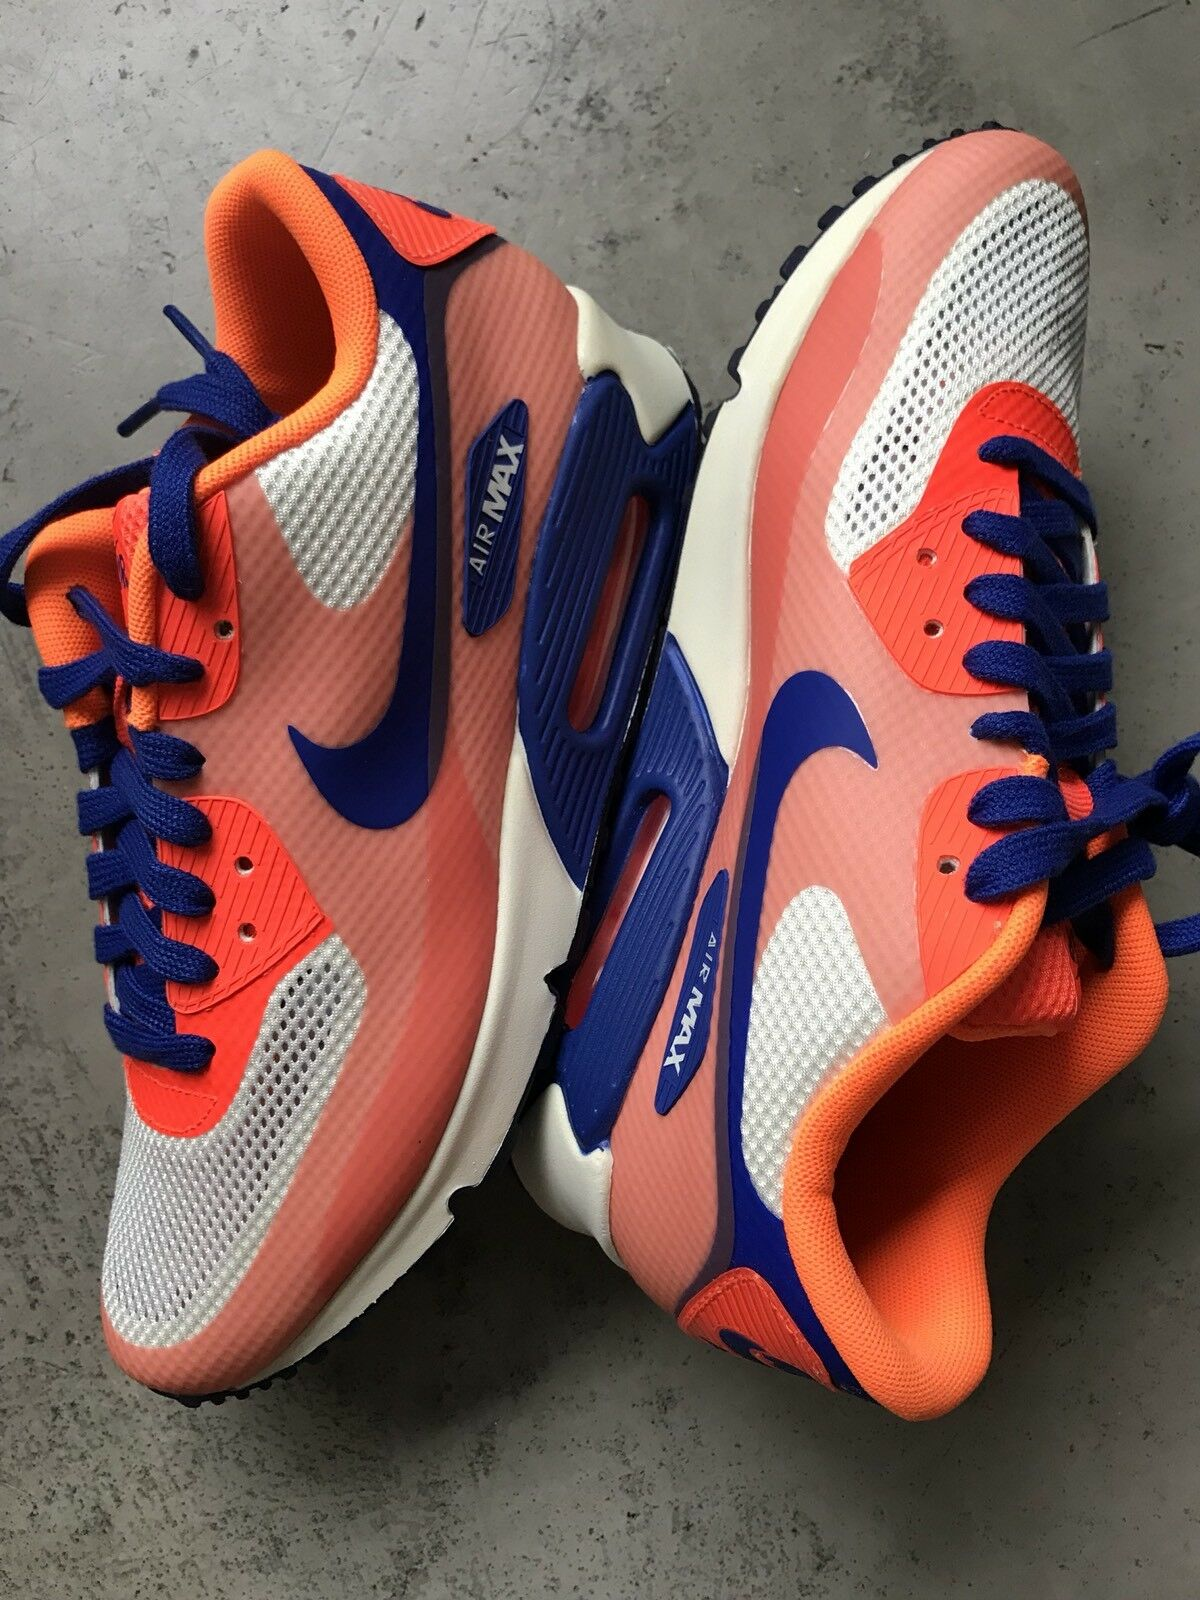 Nike AIR MAX 90 HYP PREM WMN sz 8.5 Bright patta Citrus 454460 100 atmos patta Bright animal f79a6d